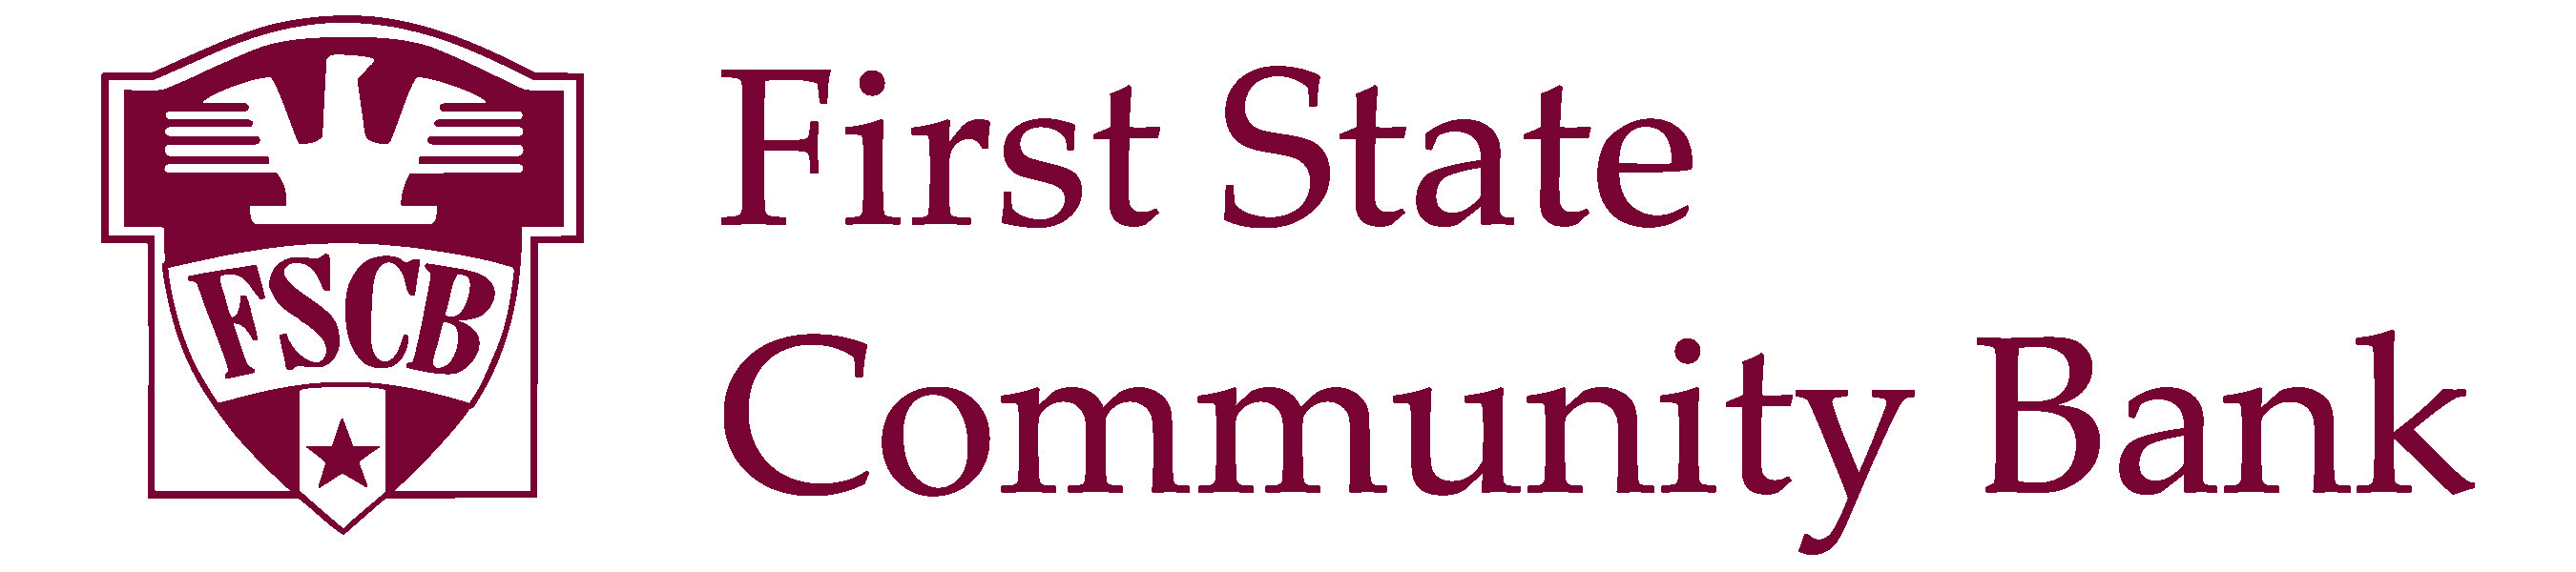 First state community bank horizontal color logo